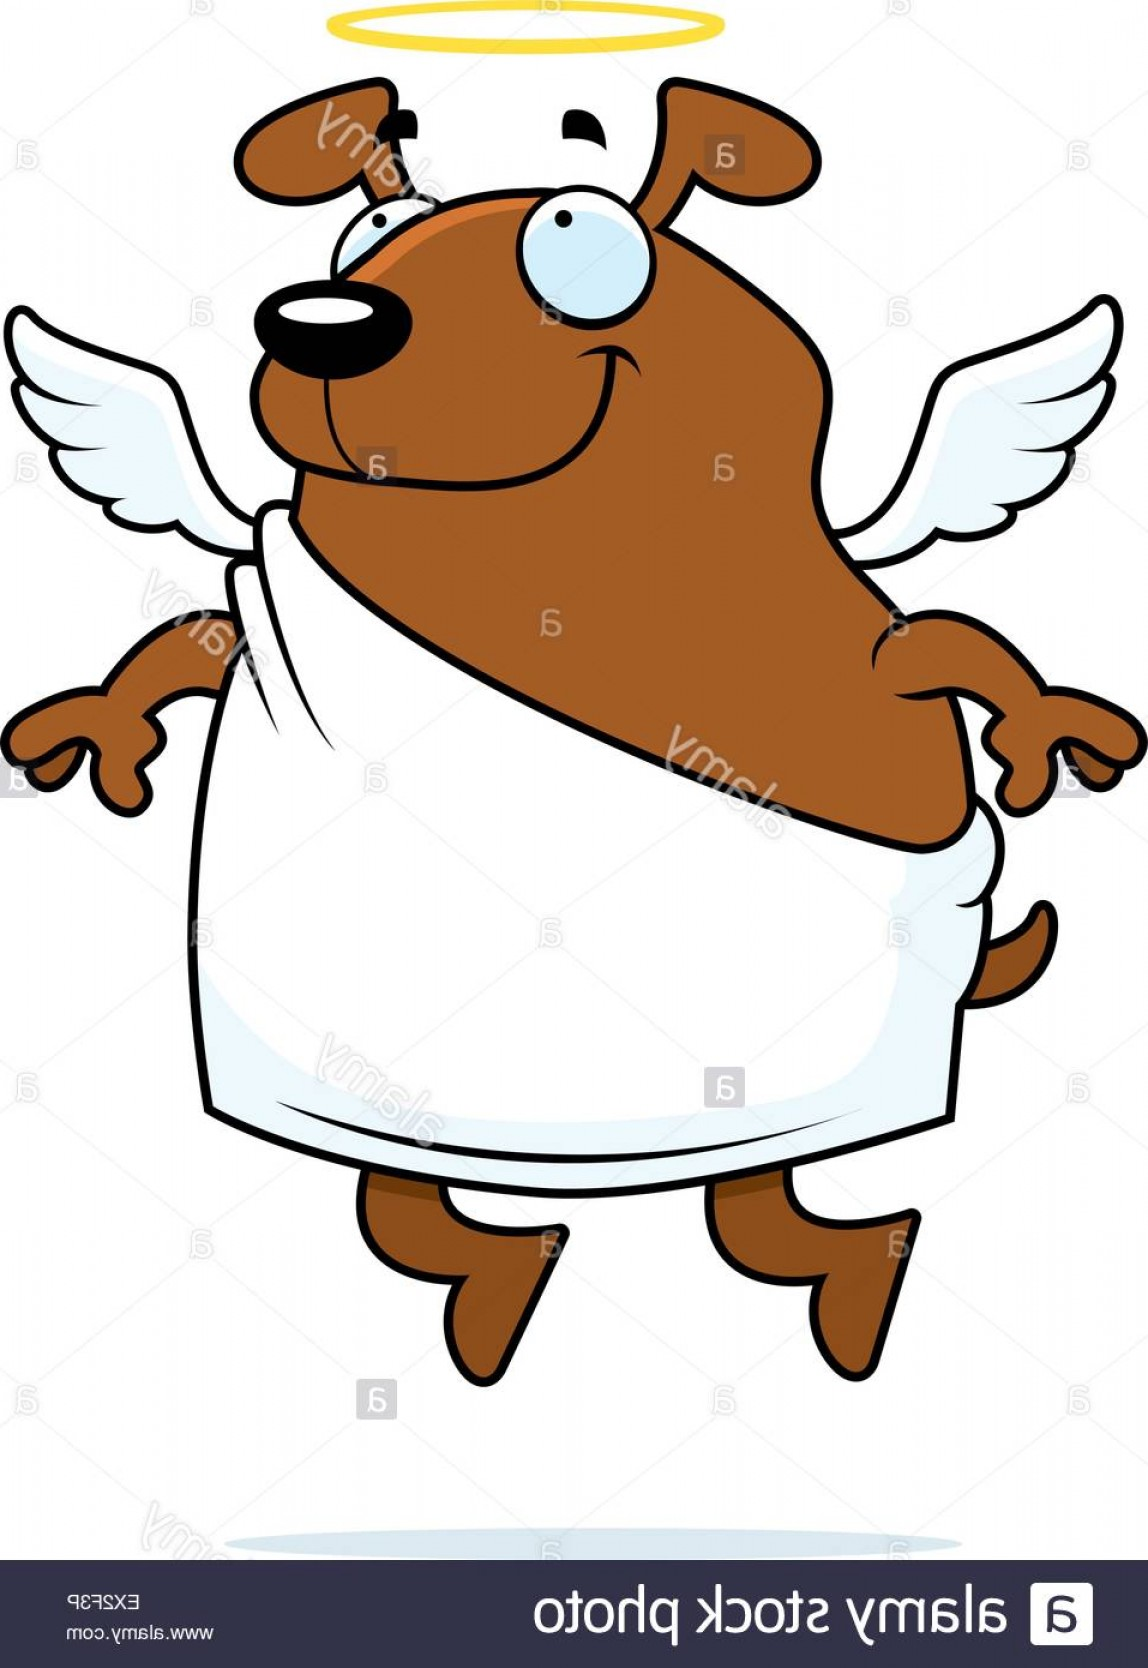 Vector Of Angel Art Dog: Stock Photo A Happy Cartoon Dog Angel With Wings And A Halo